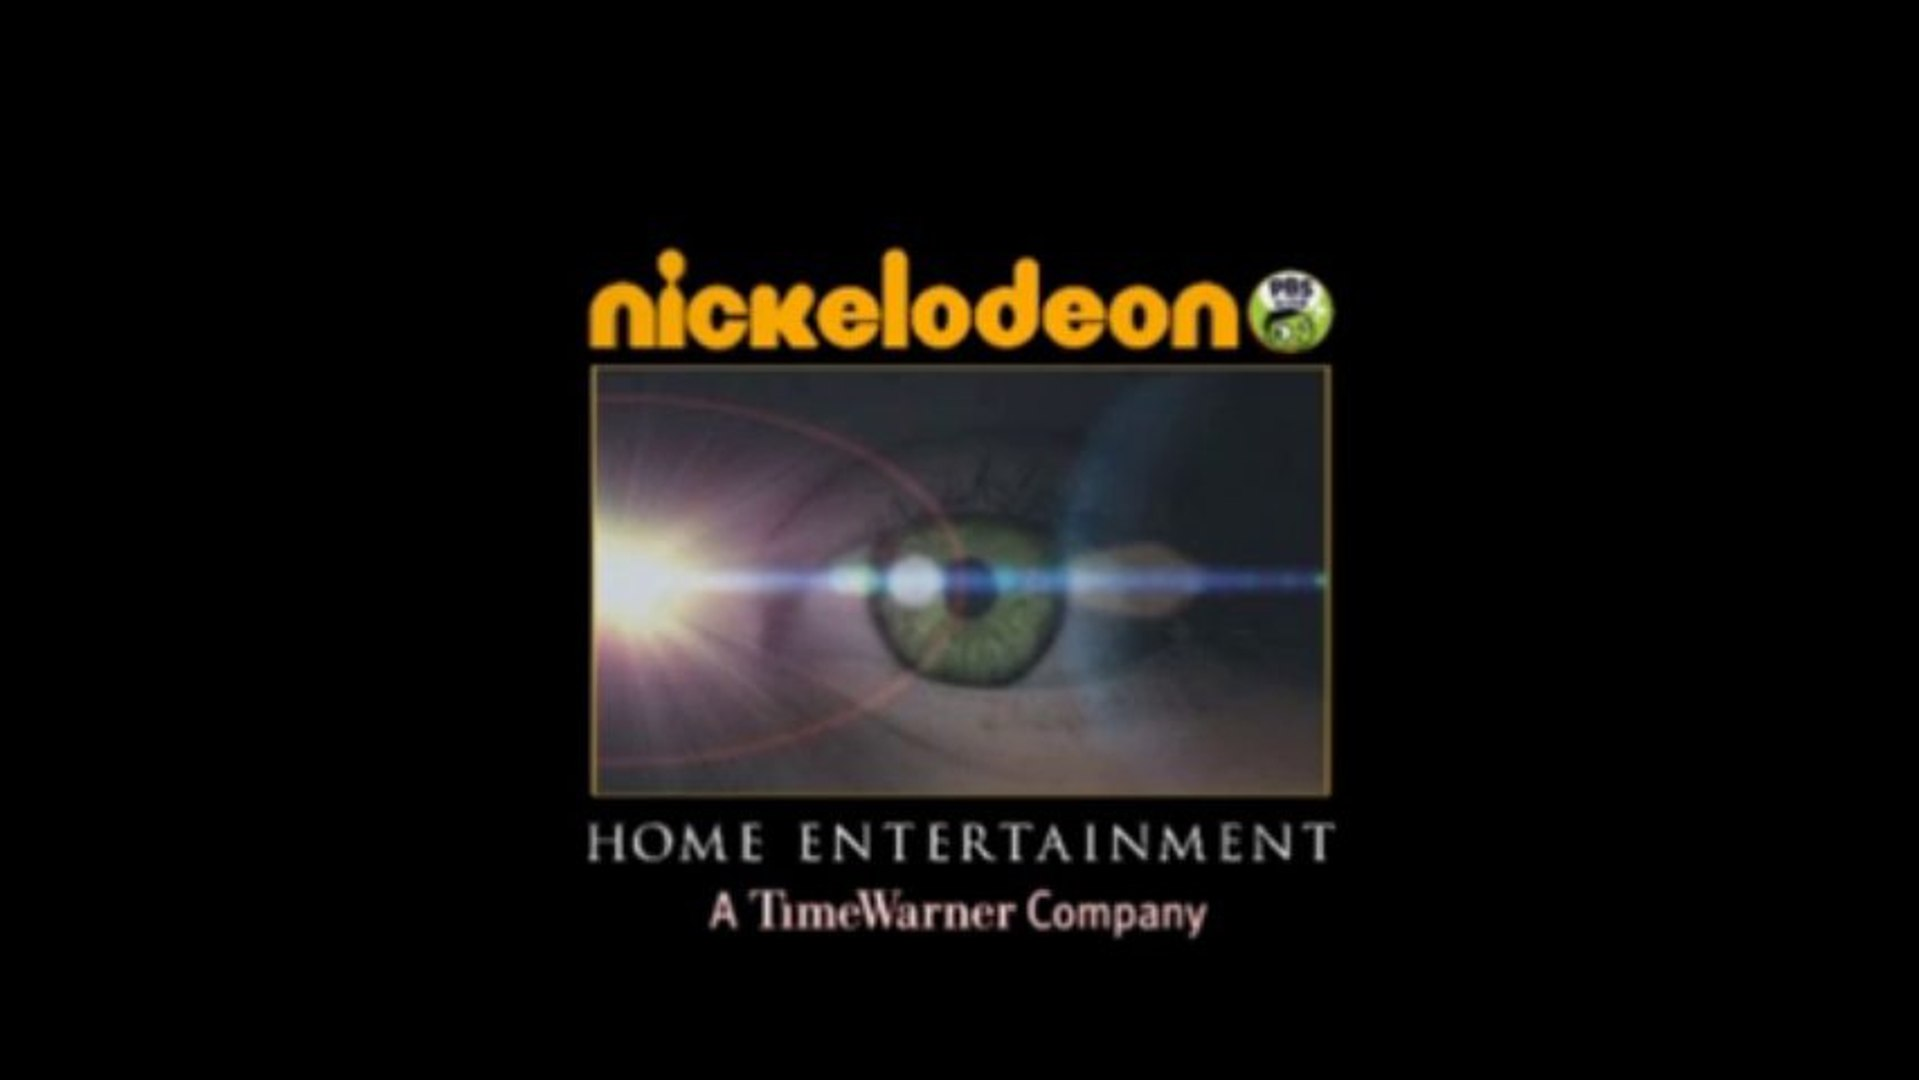 Nickelodeon/PBS Kids Home Entertainment New Look (October 2015)